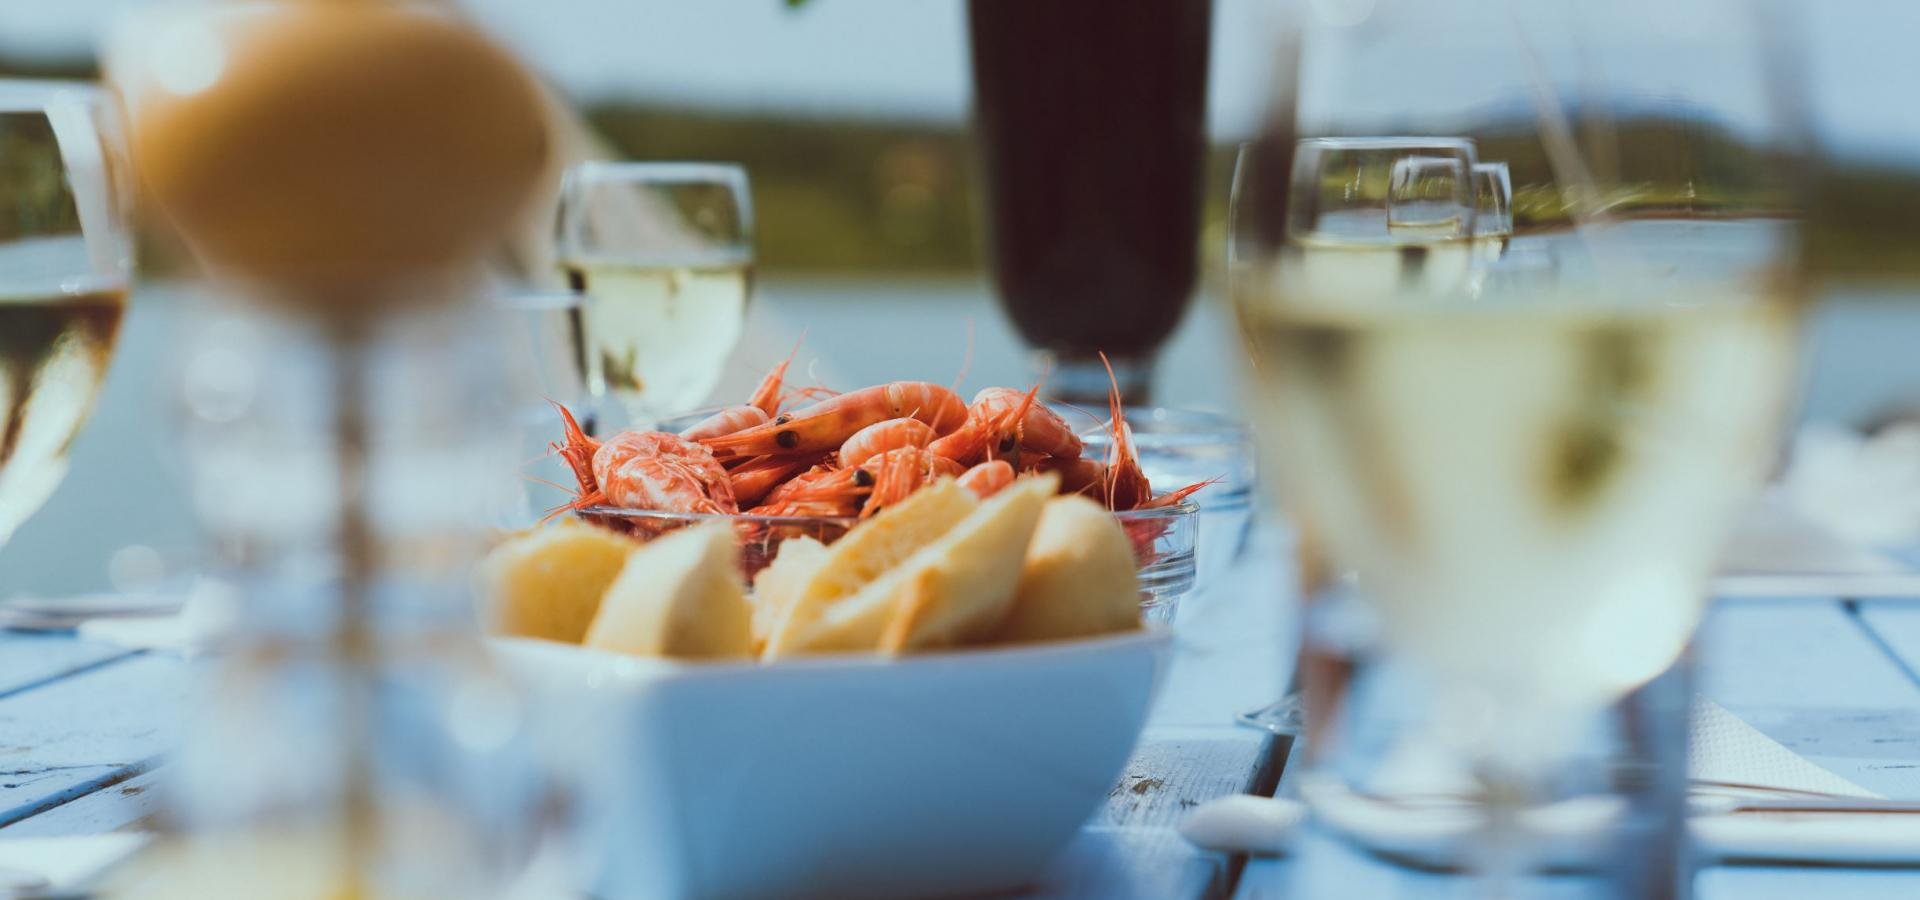 A summer table with glasses of wine, bowls with with bread and shrimps